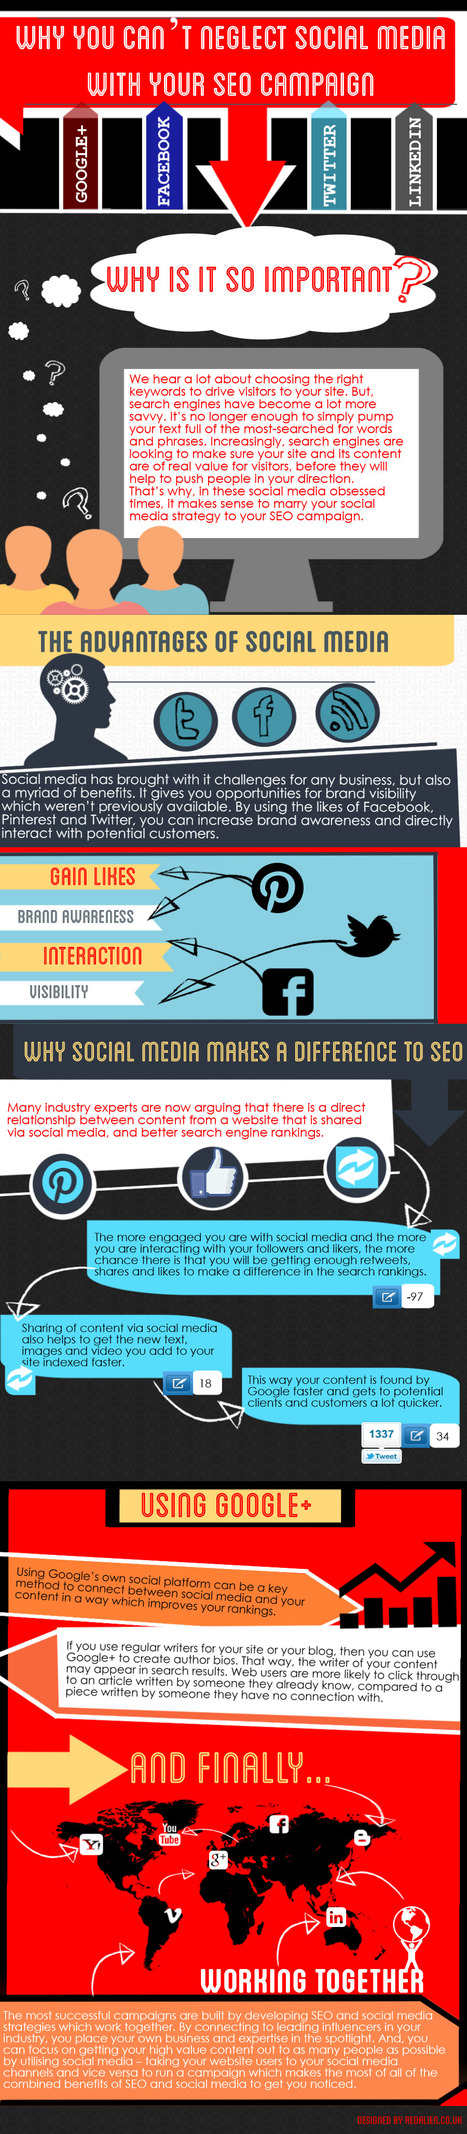 Why you can't neglect social media with SEO campaigns | Digital, Social Media and Internet Marketing | Scoop.it